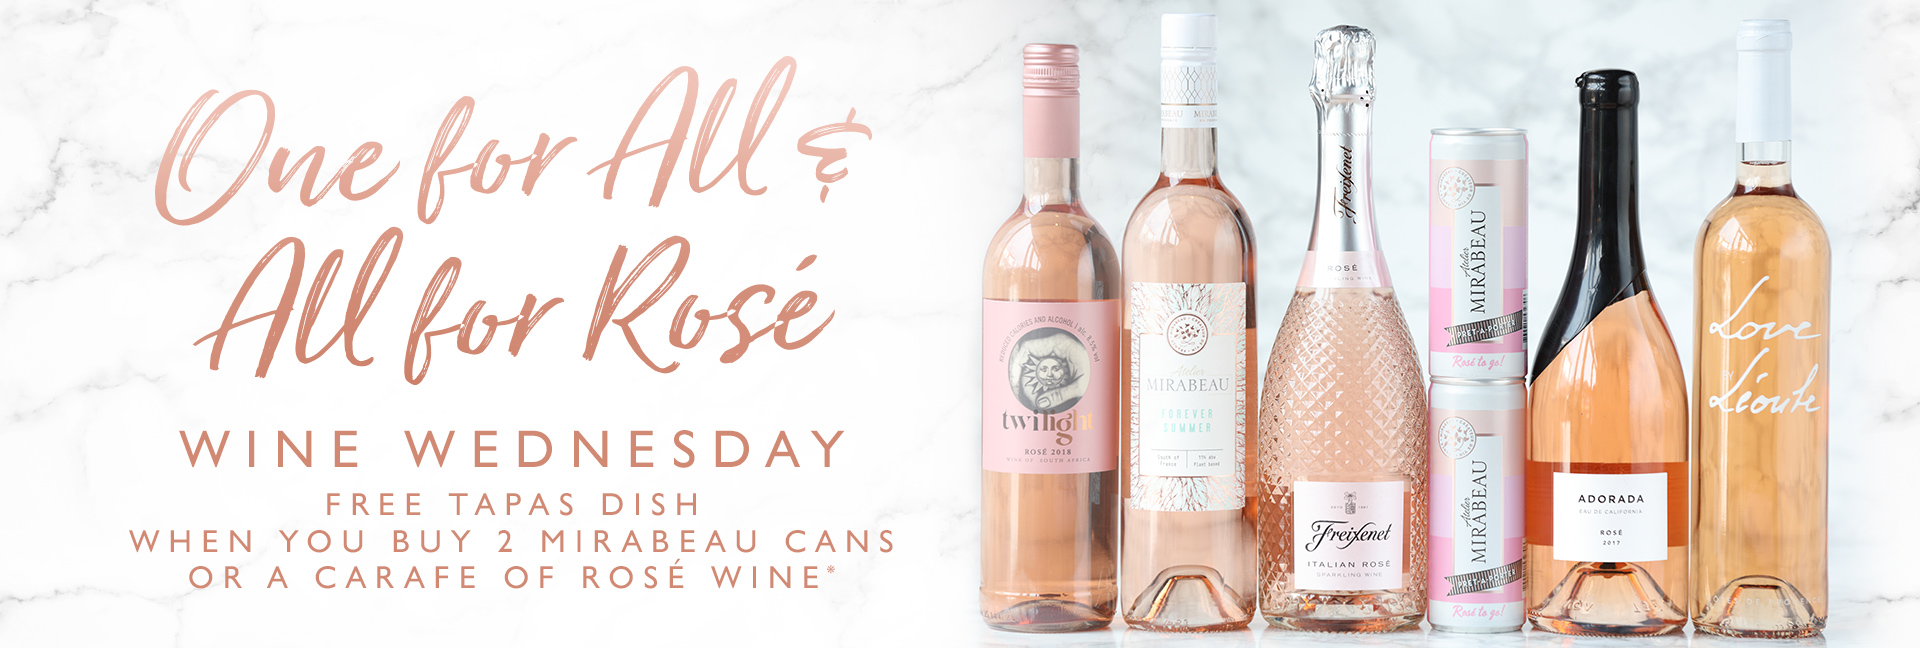 Wine Wednesday at All Bar One Milton Keynes